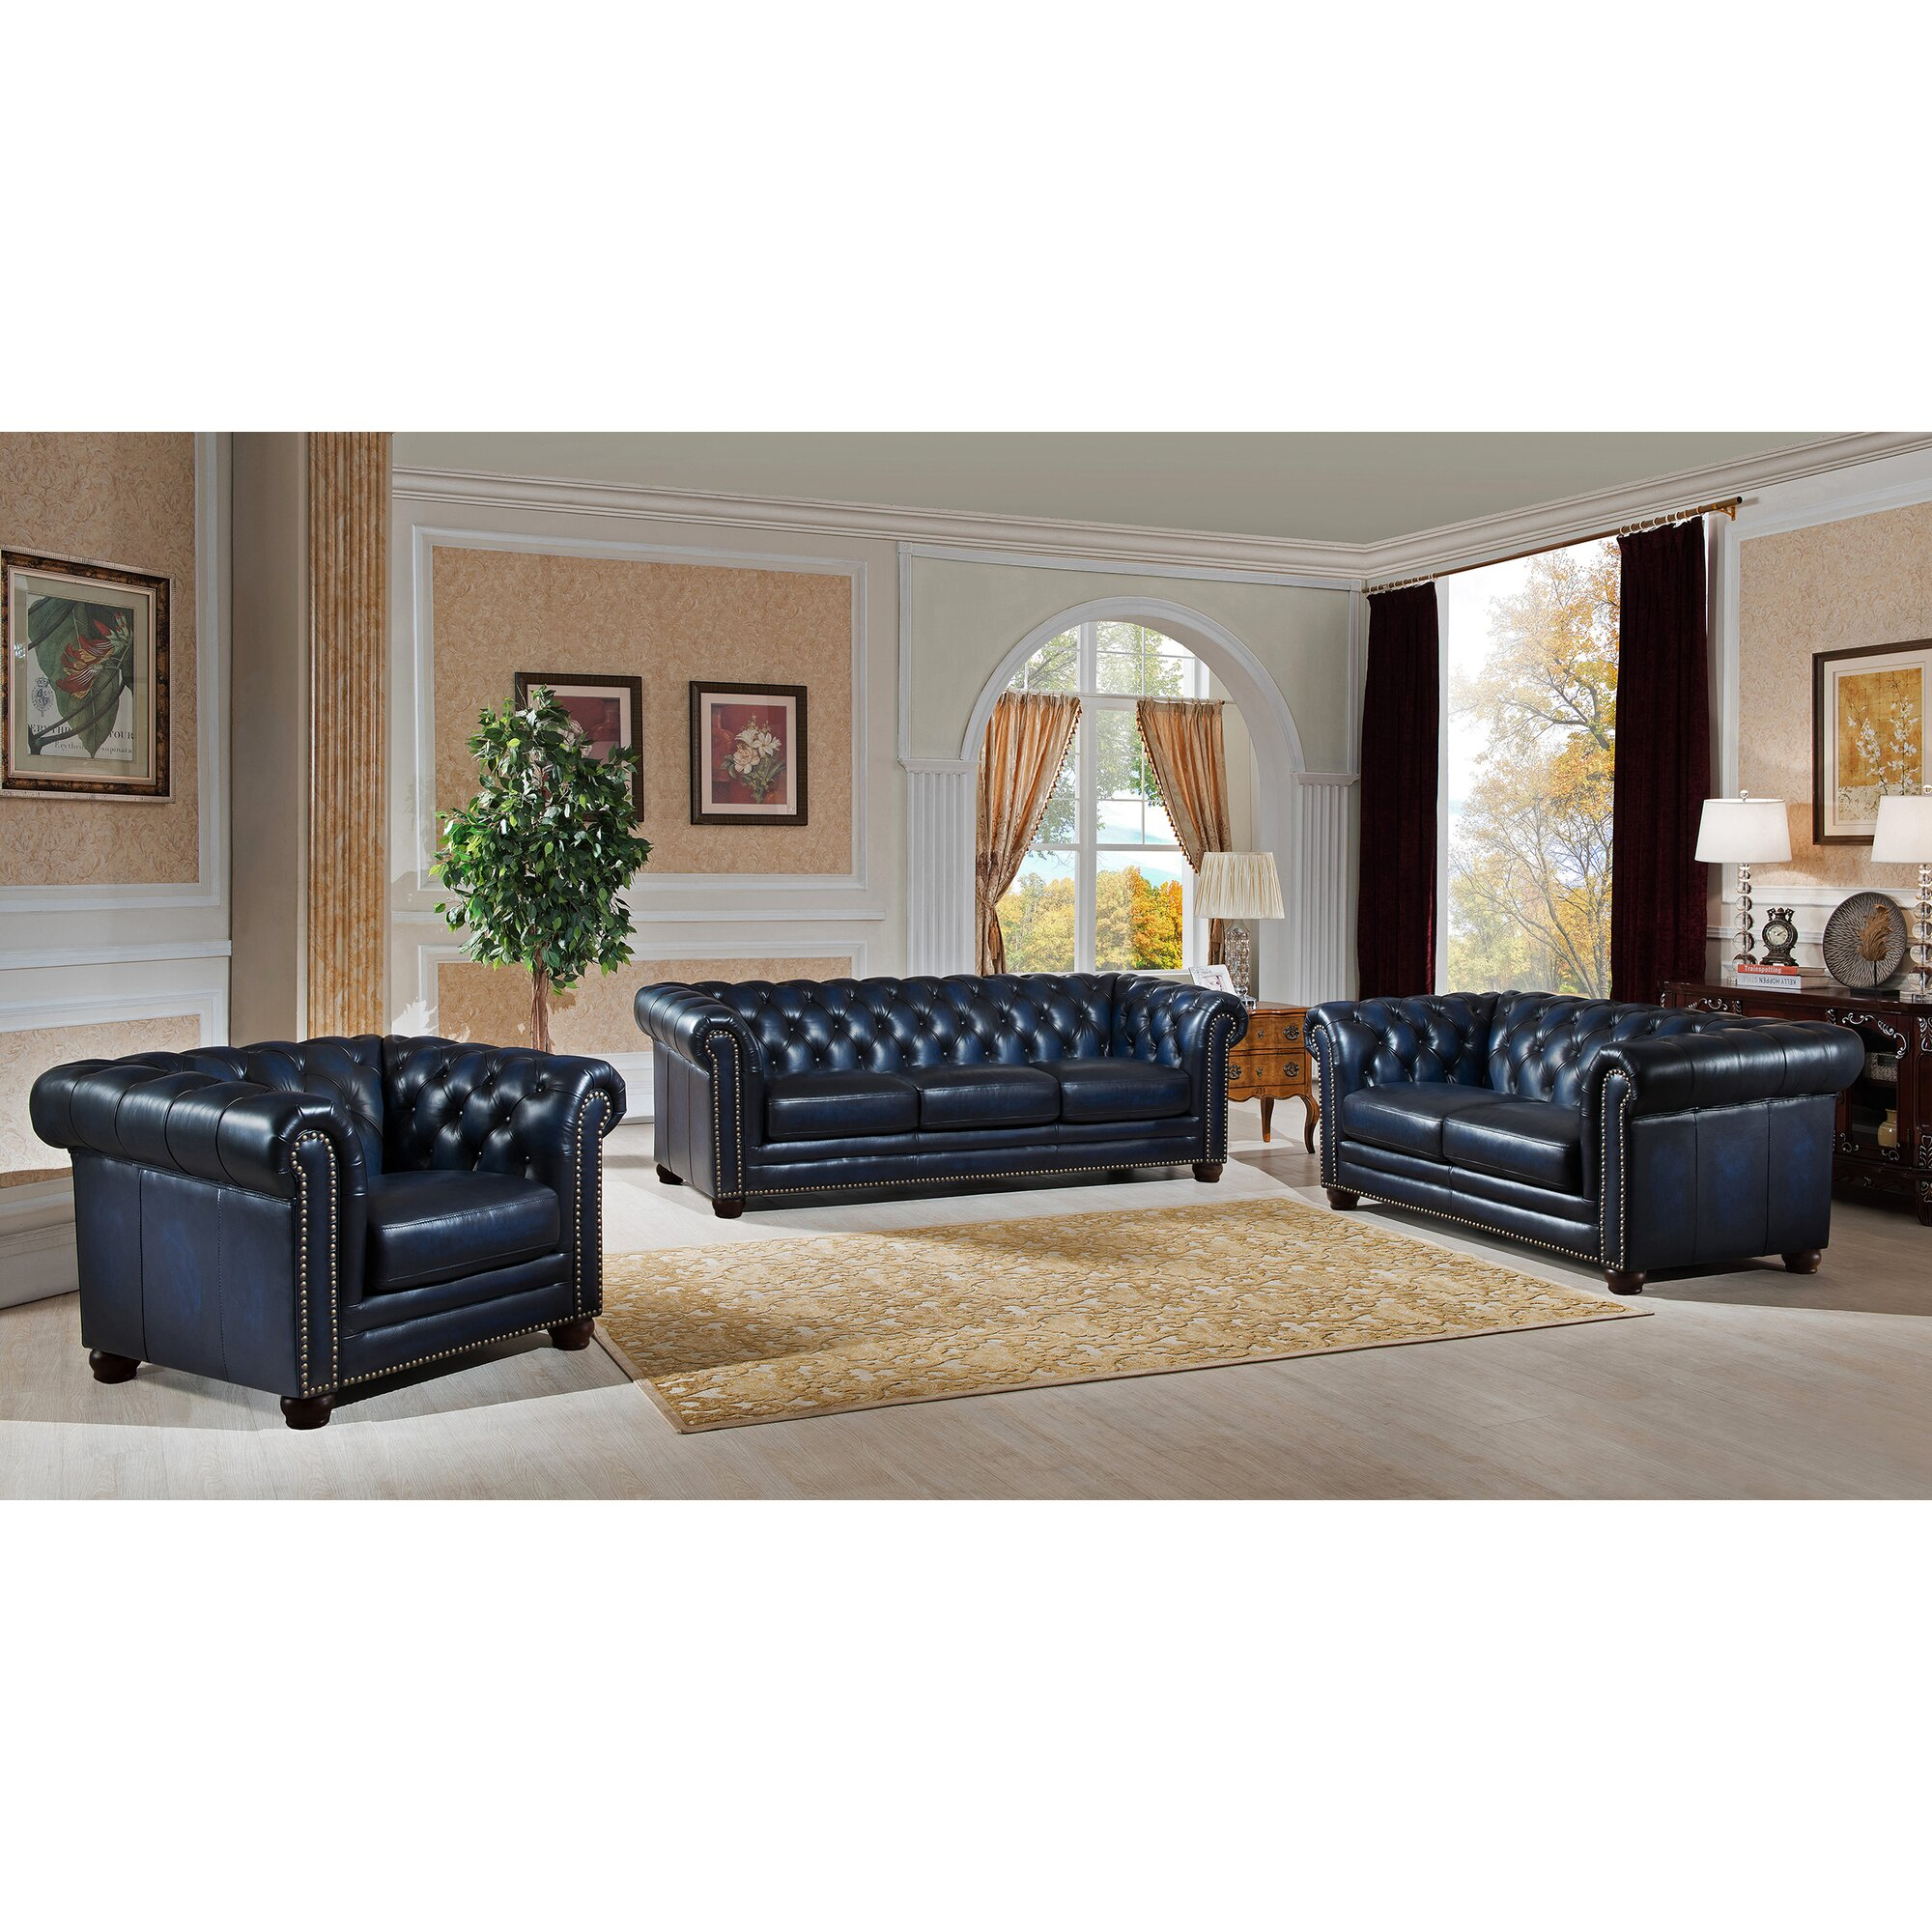 Amax Nebraska Leather Chesterfield Sofa & Reviews